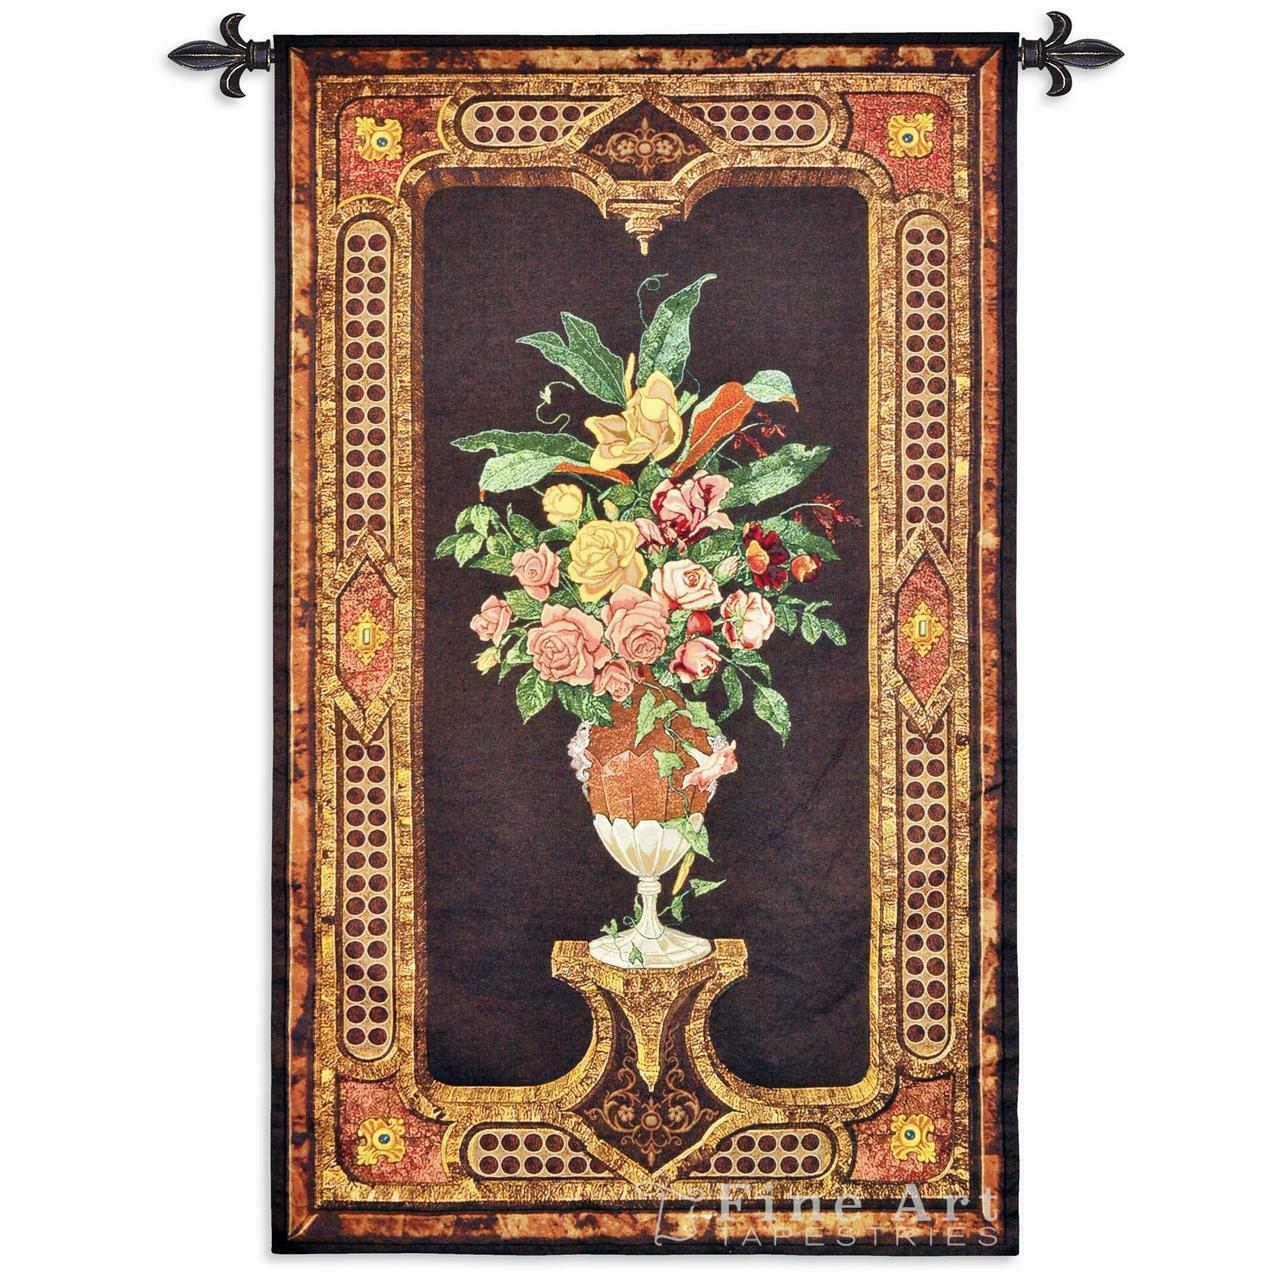 Anemone Tapestry Wall Hanging - Classic Ornamental Design with flowers 34  x 57